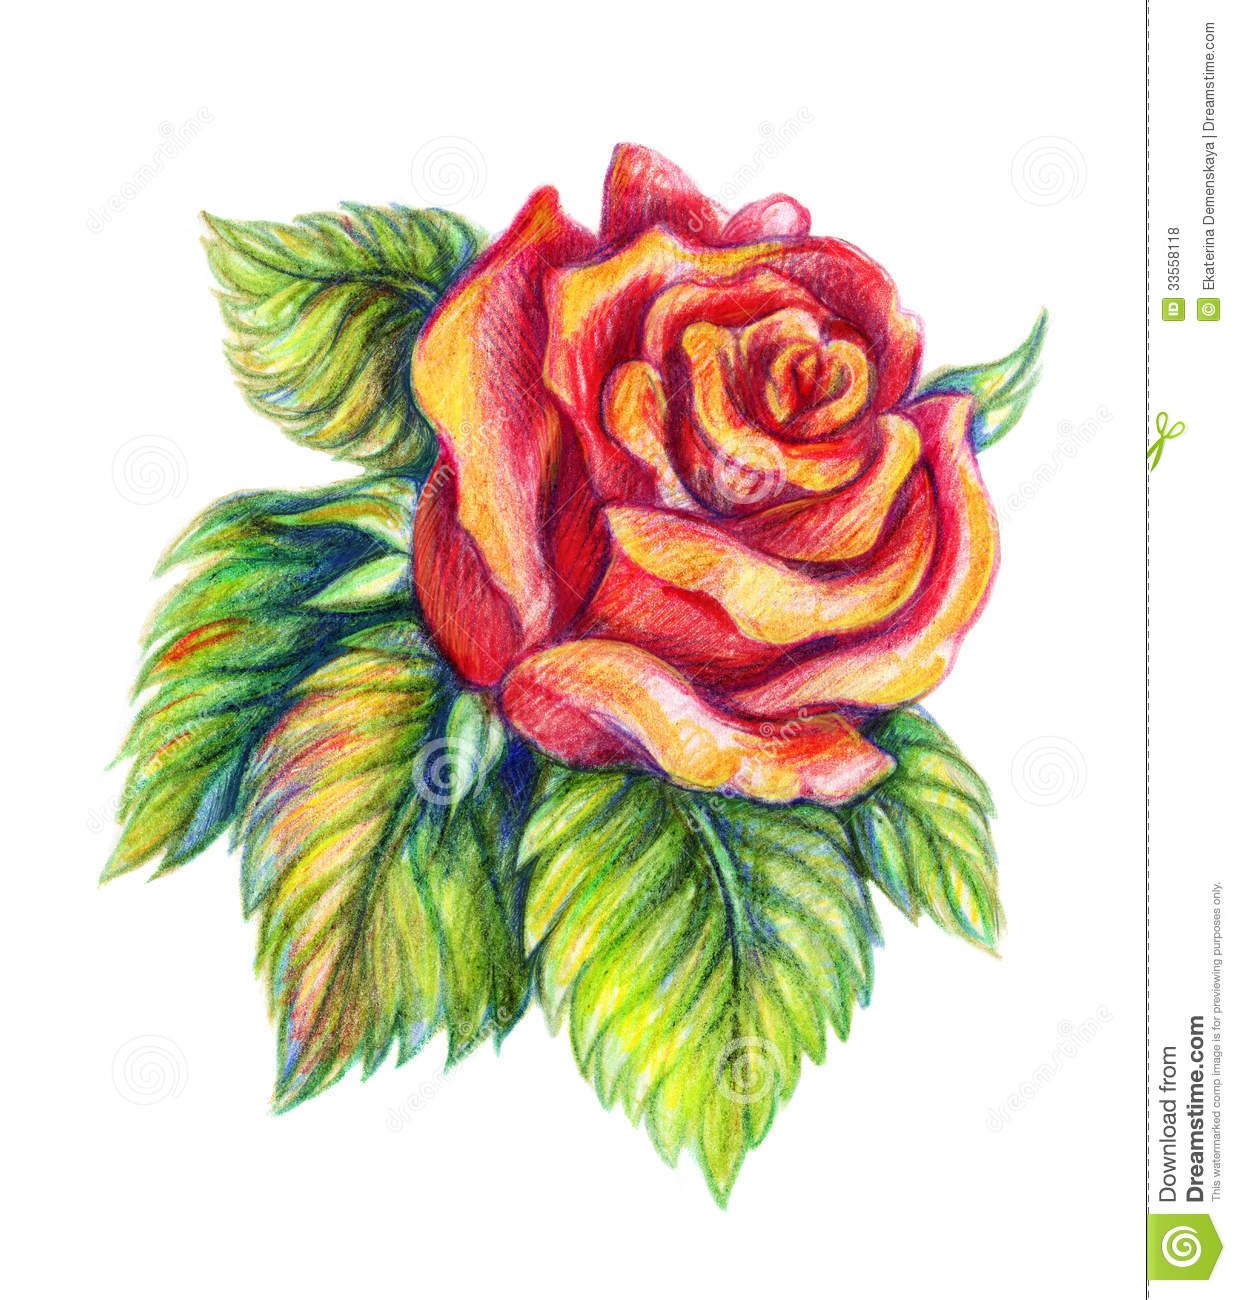 colored pencil drawings Google Search Pencil drawings